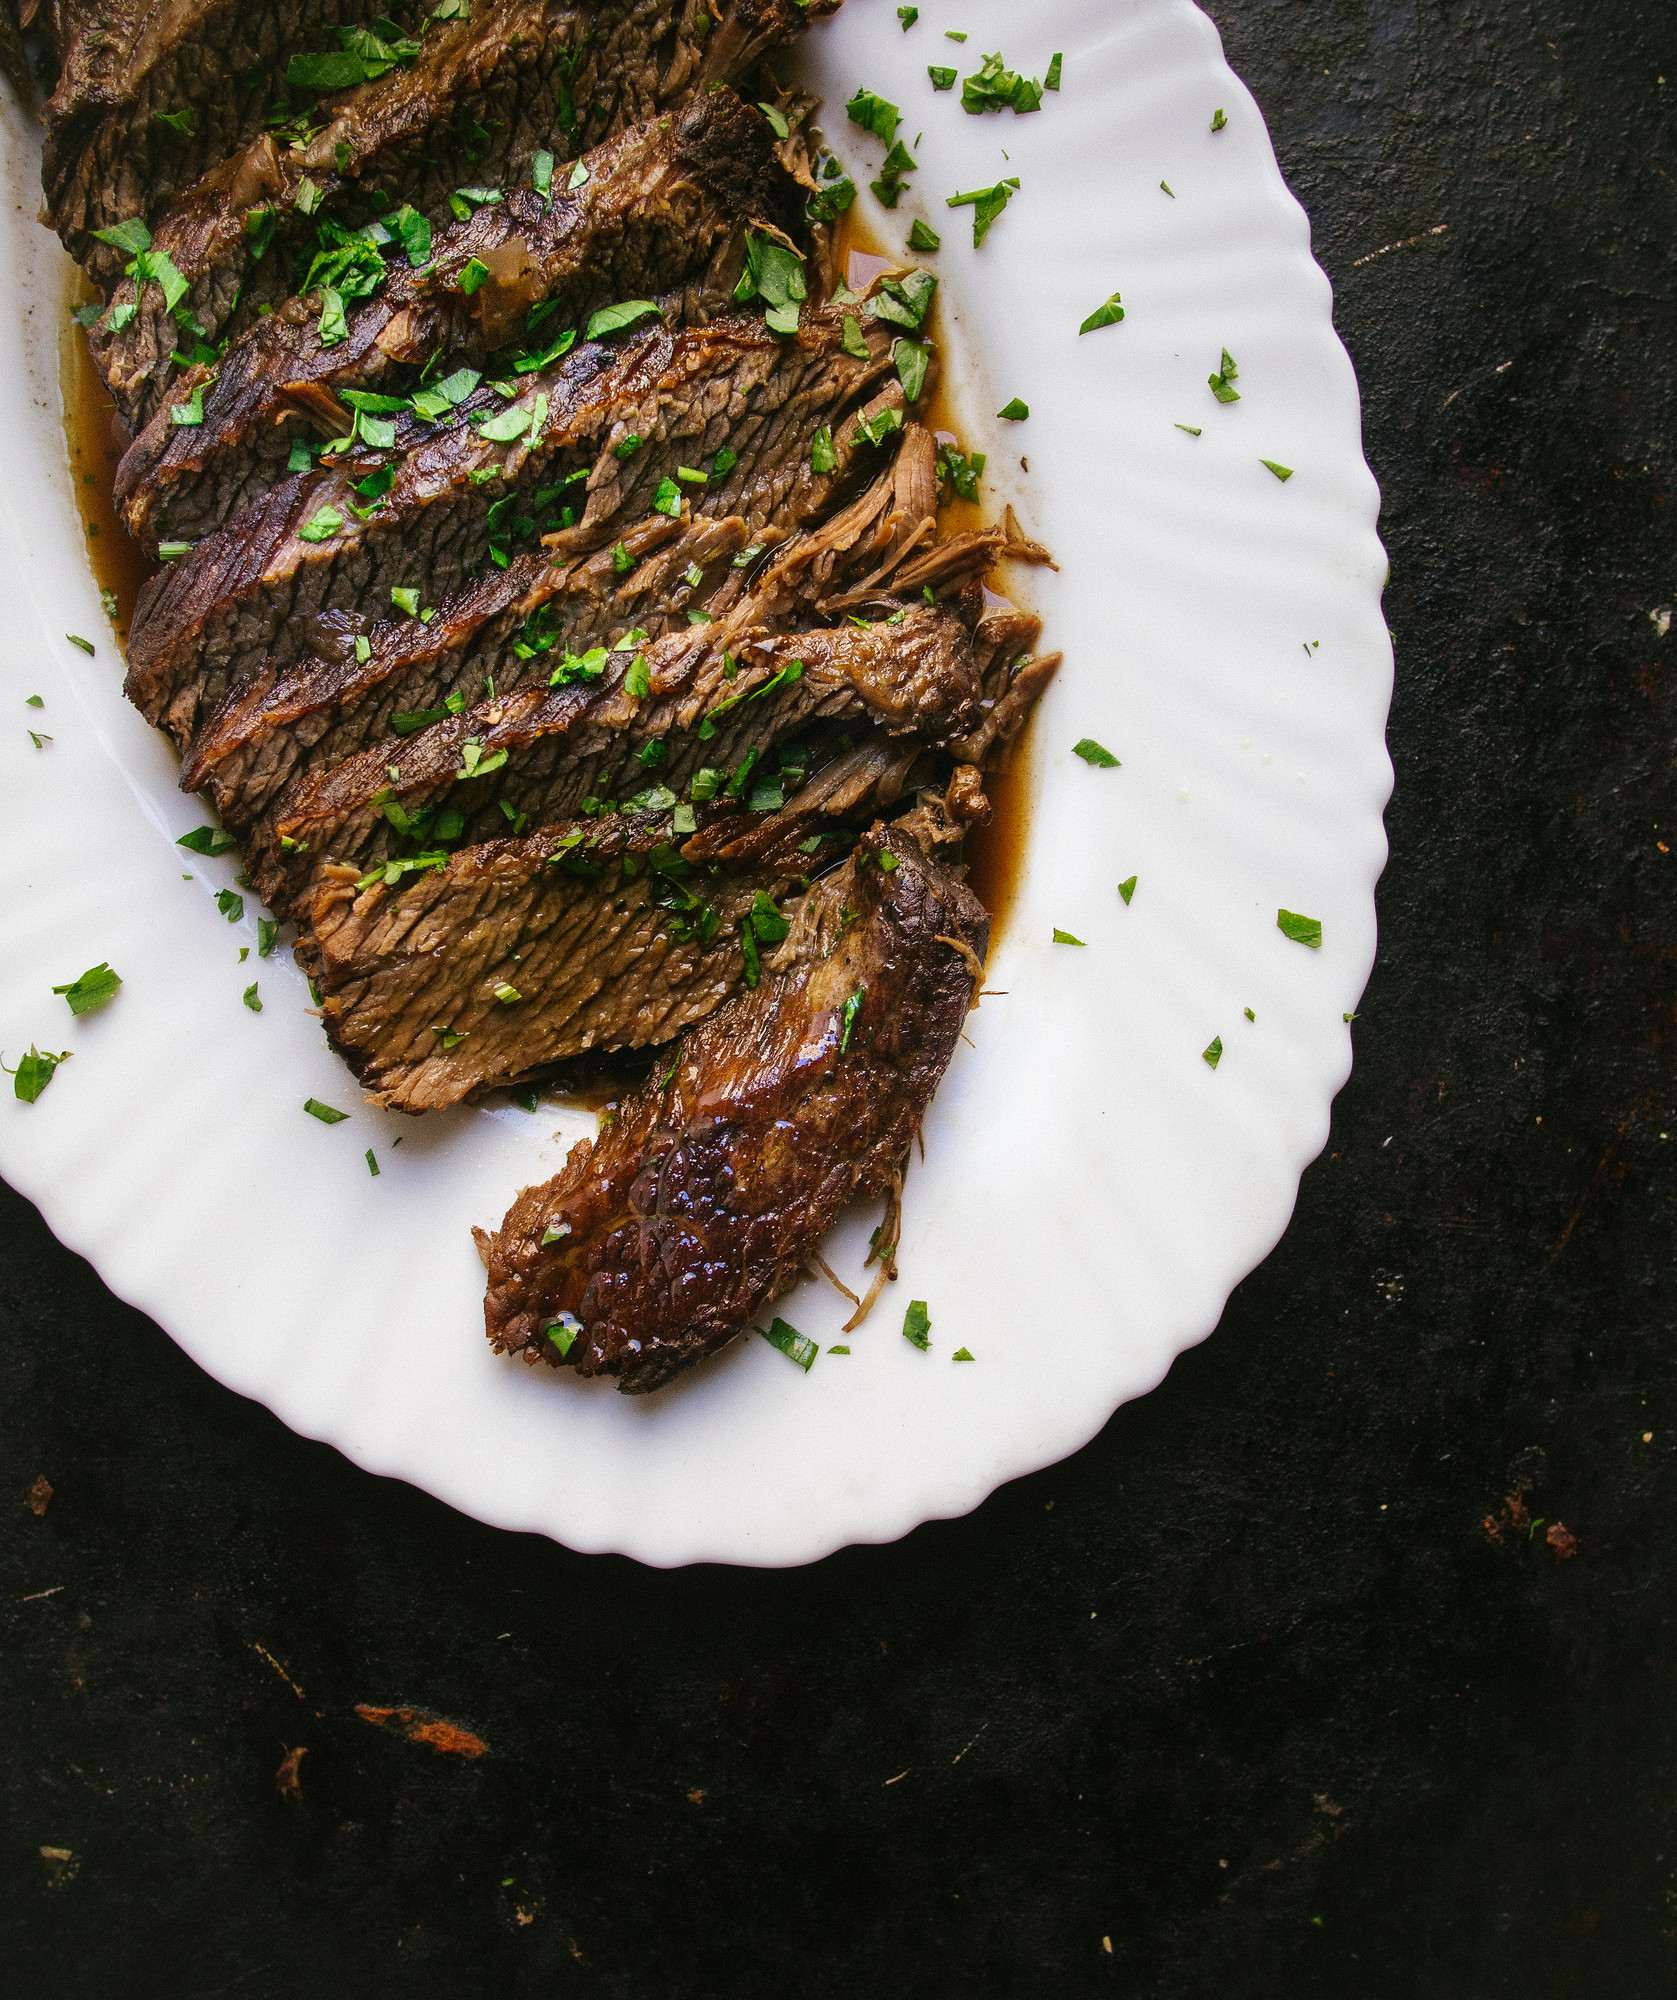 This Instant Pot braised brisket with red wine can be made in under an hour and is perfect for having guests over a weeknight dinner.